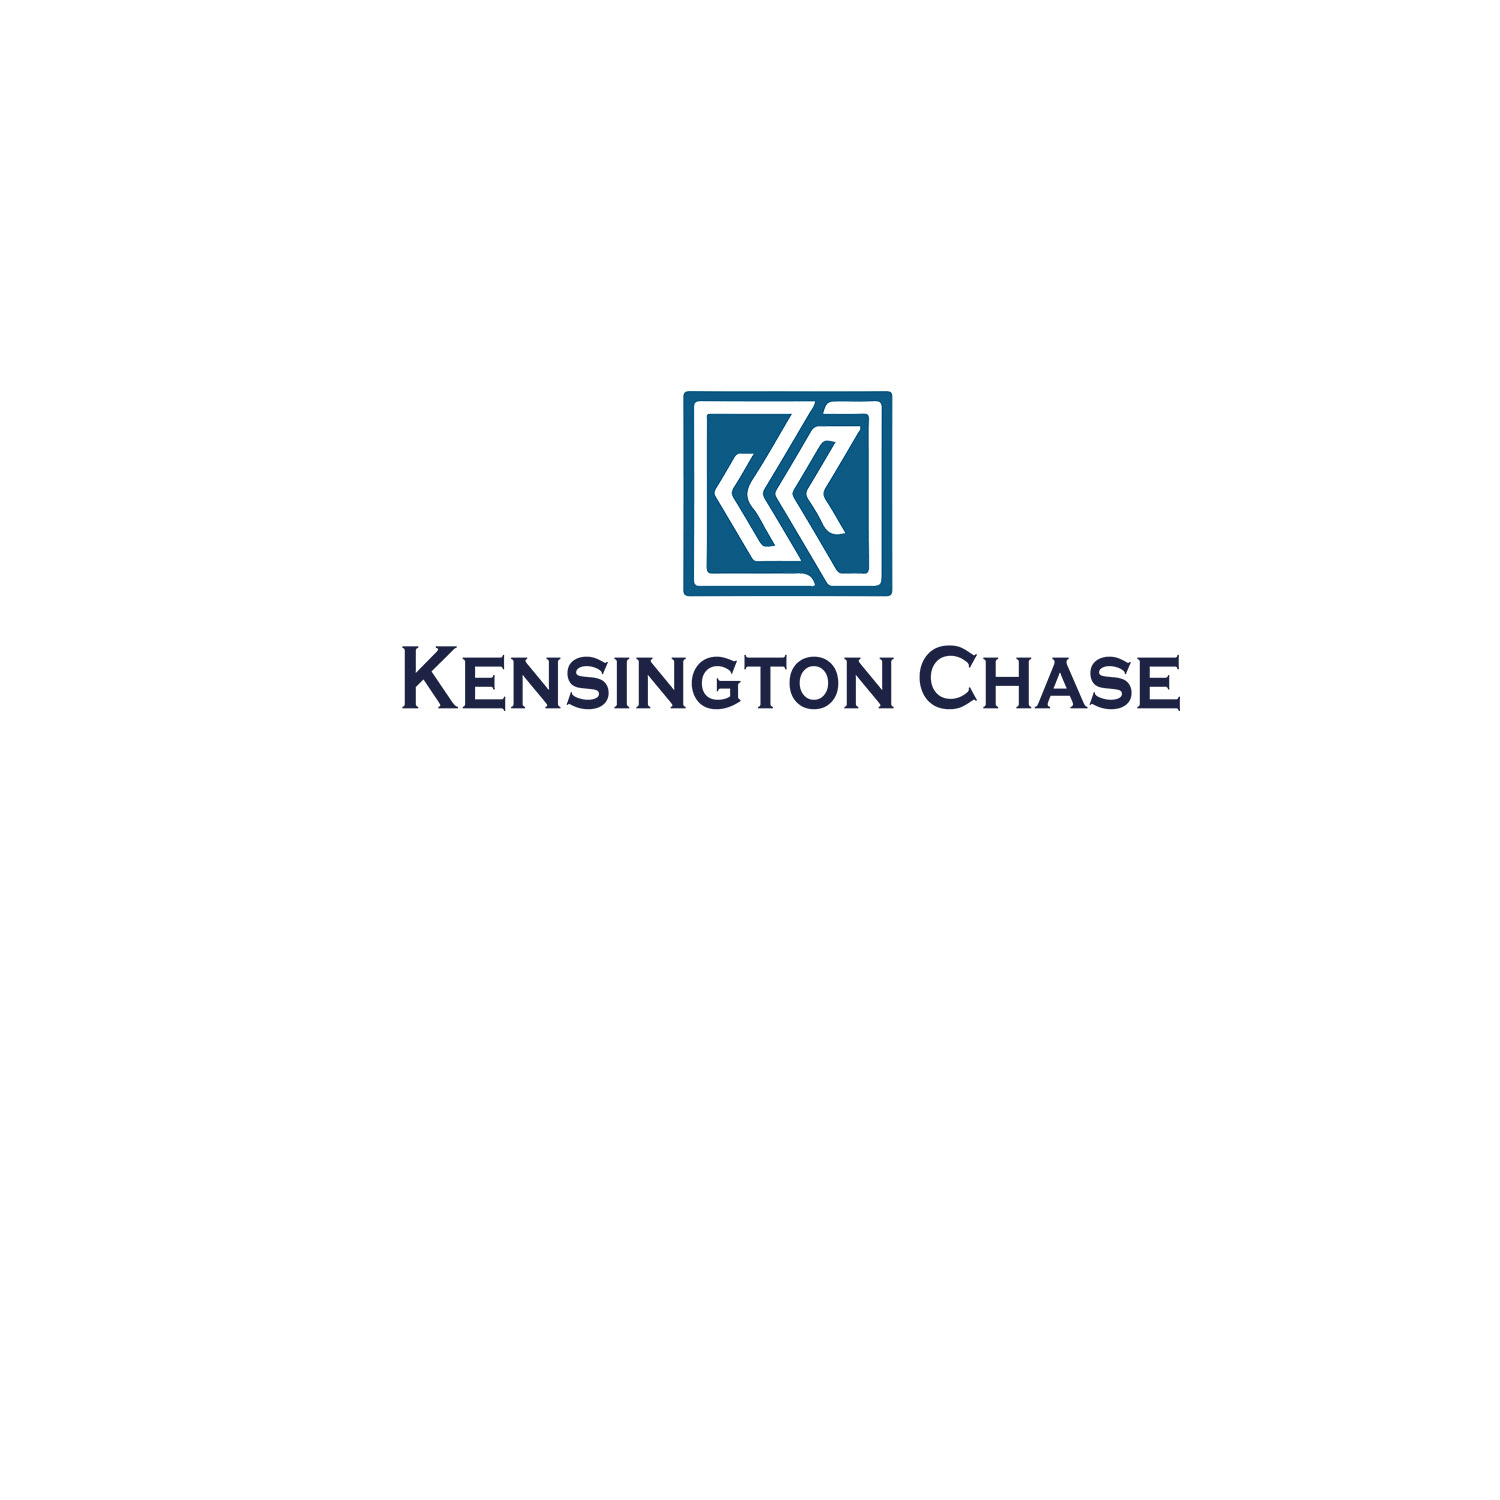 Logo Design by YANUAR ANTABUA - Entry No. 11 in the Logo Design Contest Kensington Chase  Logo Design.